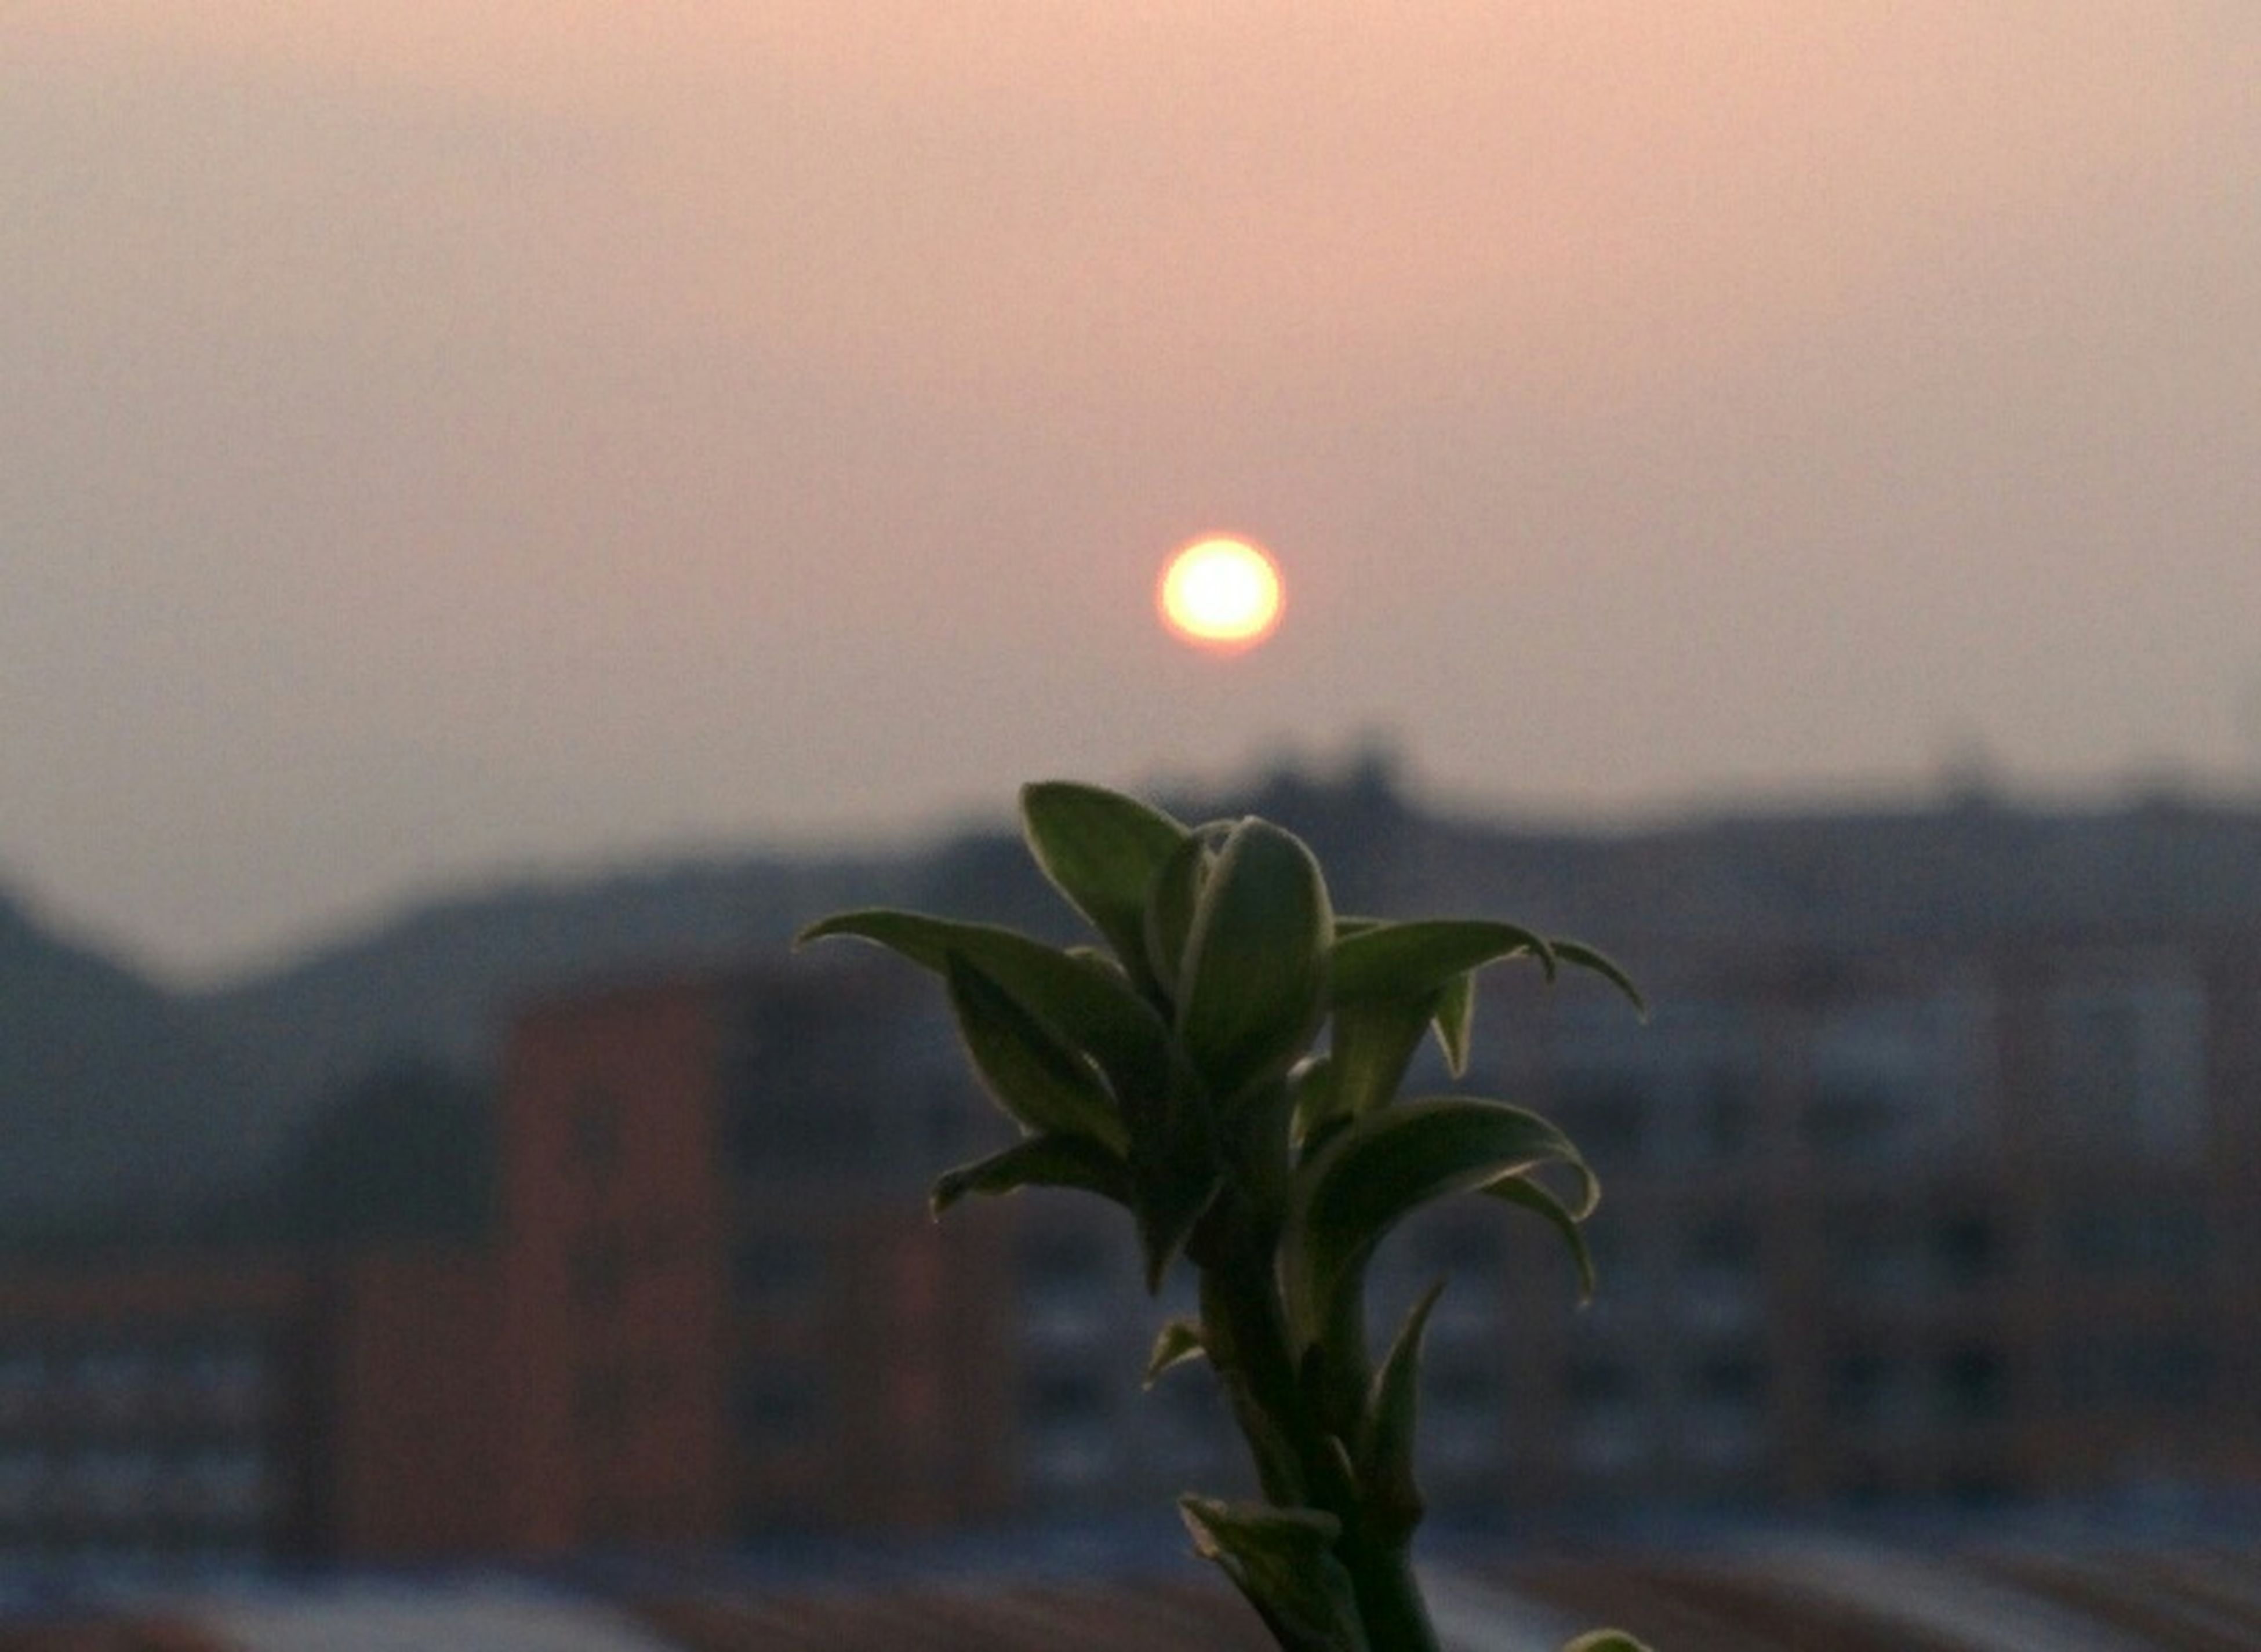 sunset, plant, growth, leaf, focus on foreground, nature, sun, sky, beauty in nature, close-up, sunlight, tranquility, green color, clear sky, growing, no people, outdoors, selective focus, tranquil scene, built structure